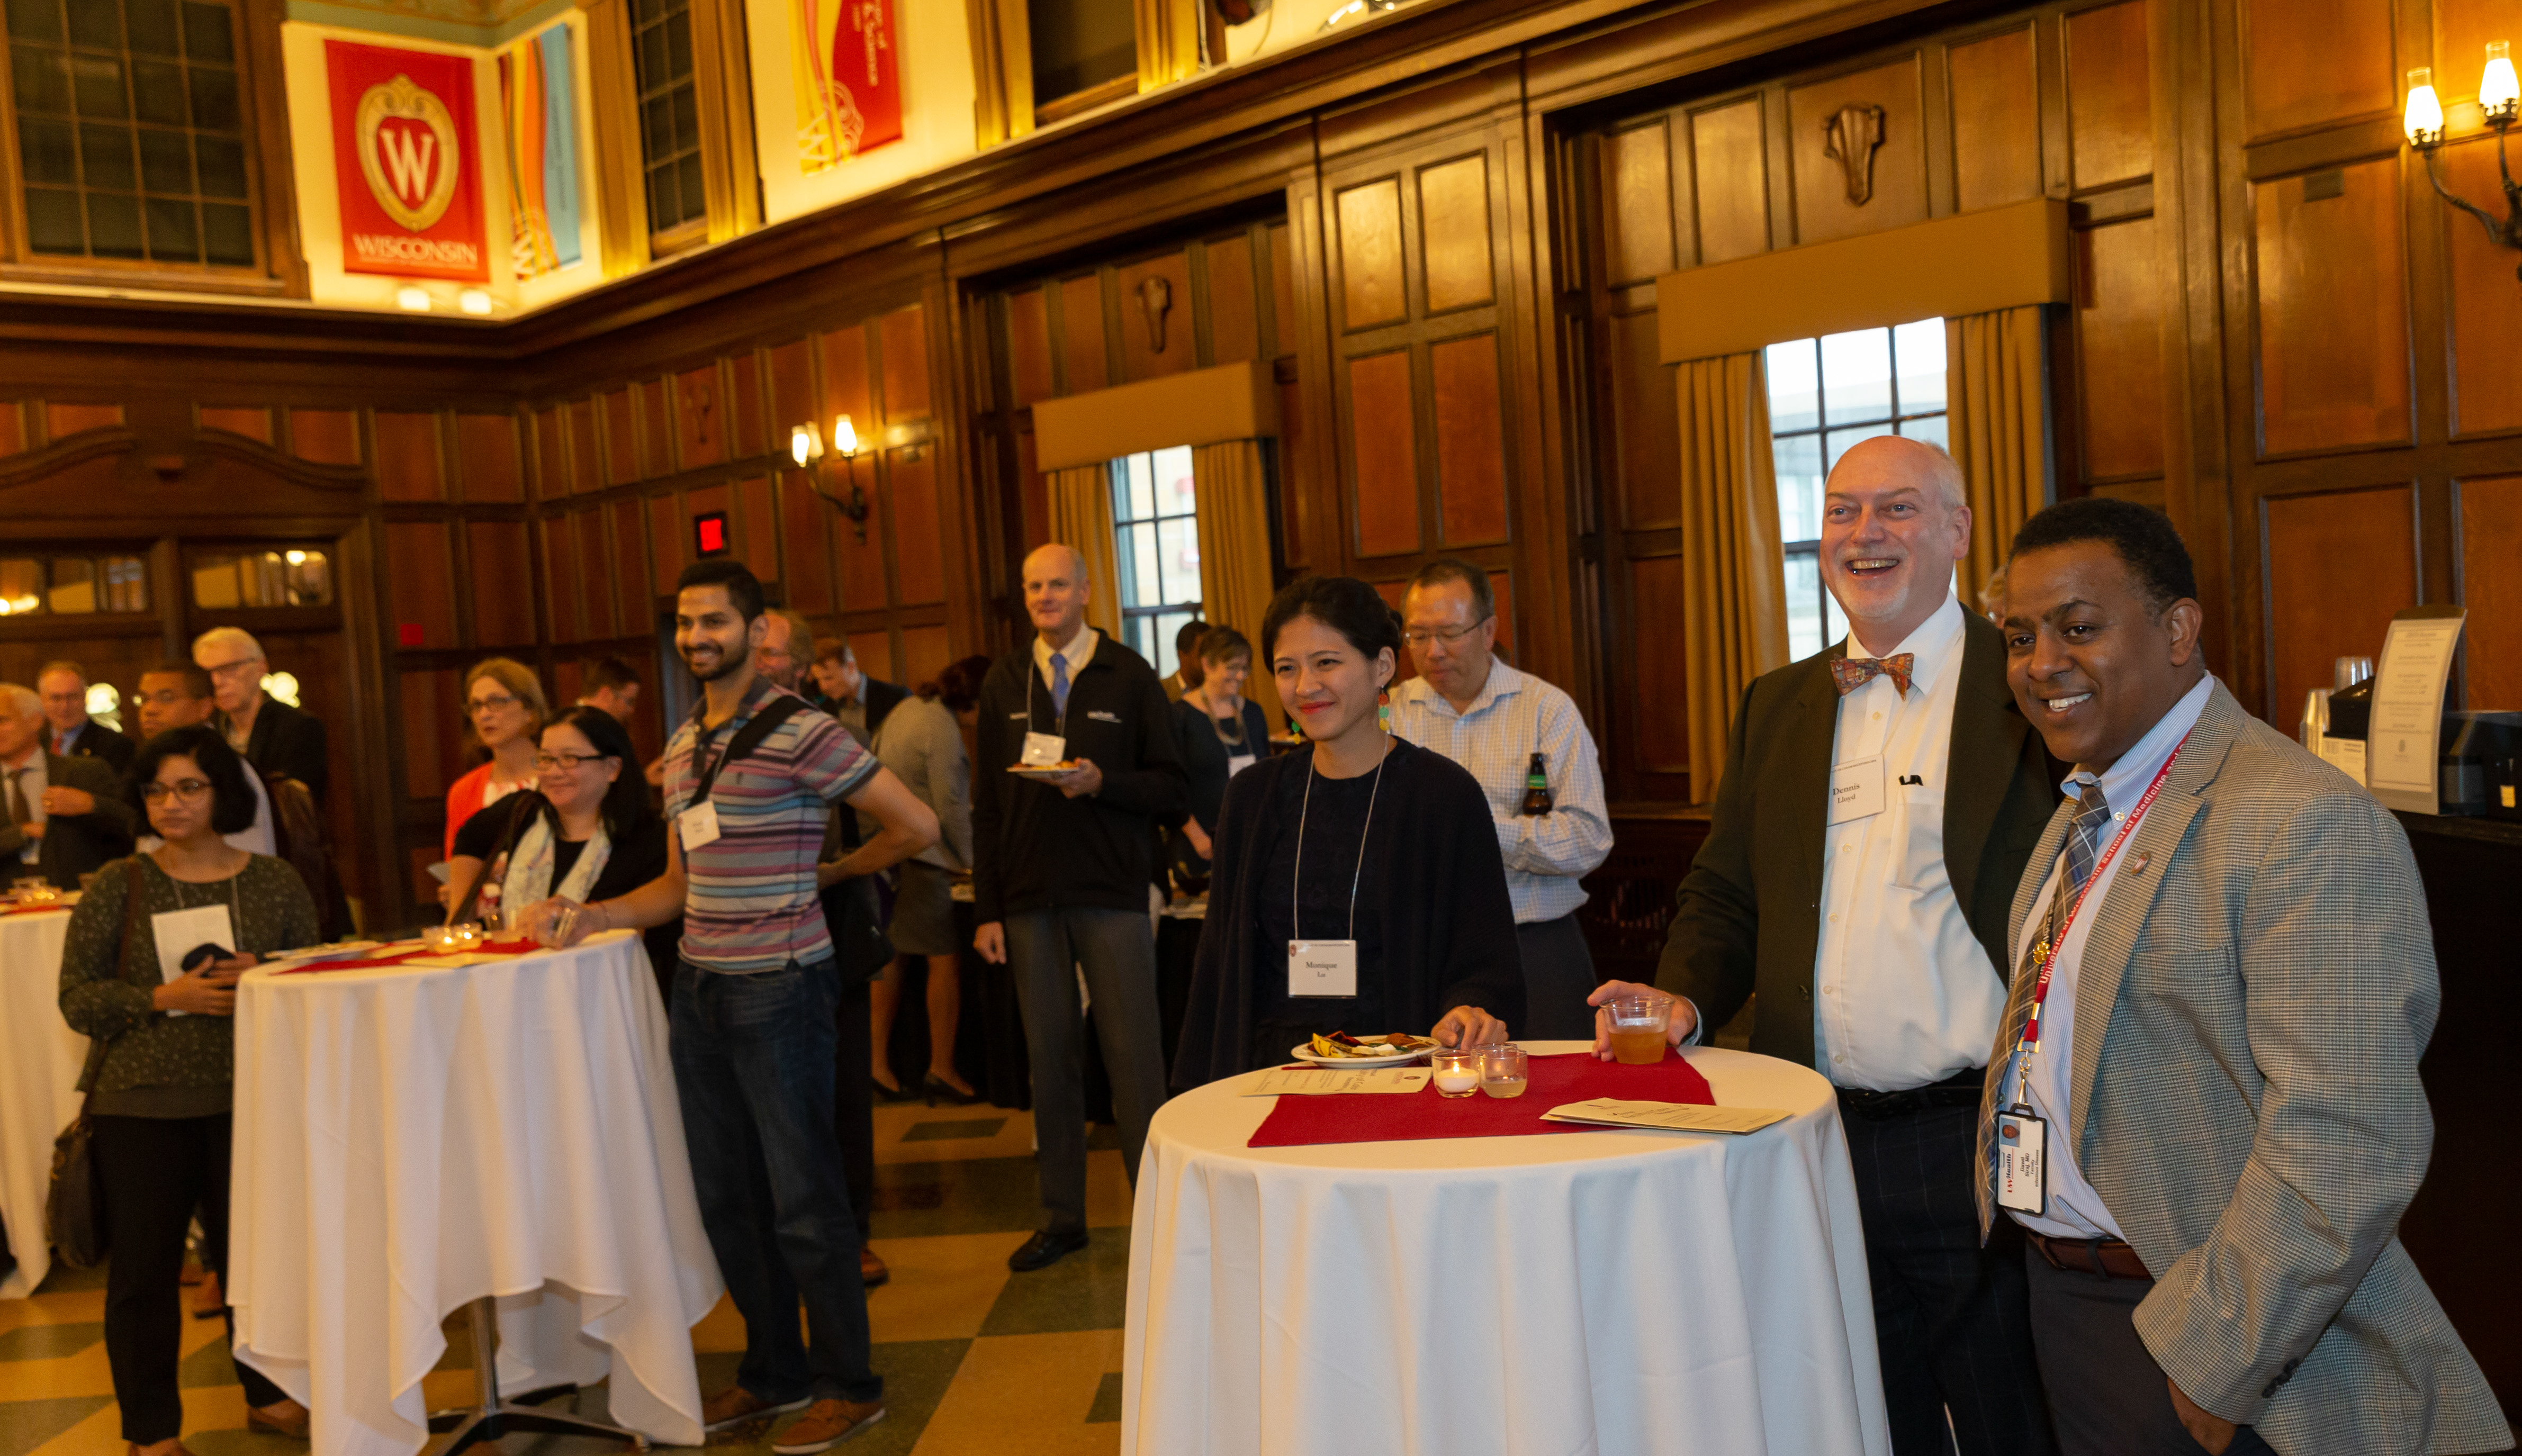 UW–Madison faculty members stand around small tables with drinks while watching a speaker who is not in the picture.